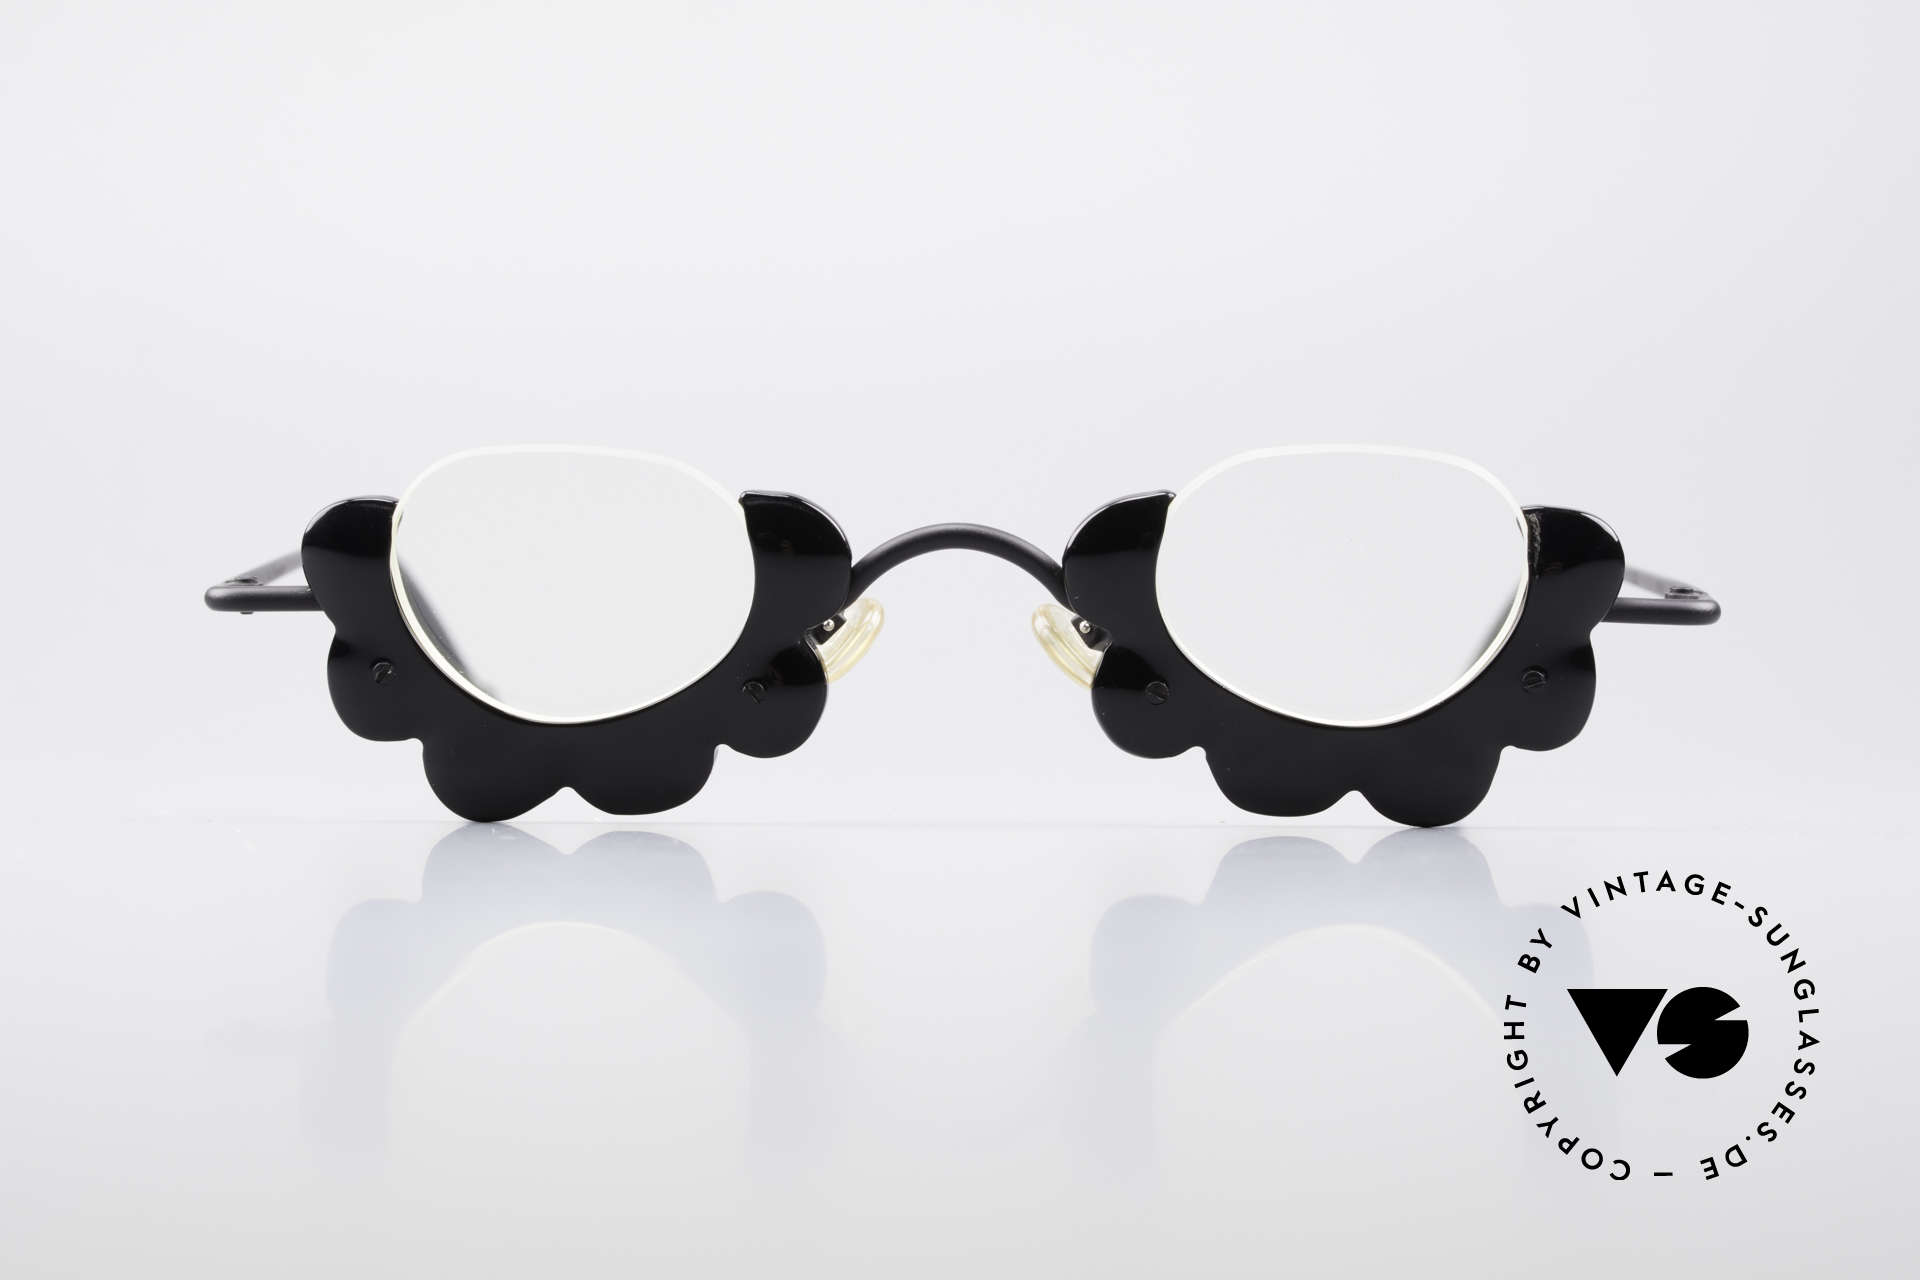 L.A. Eyeworks BUMBLE 412 Extraordinary Reading Glasses, frame is shaped like a flower / blossom (EYE-CATCHER), Made for Women